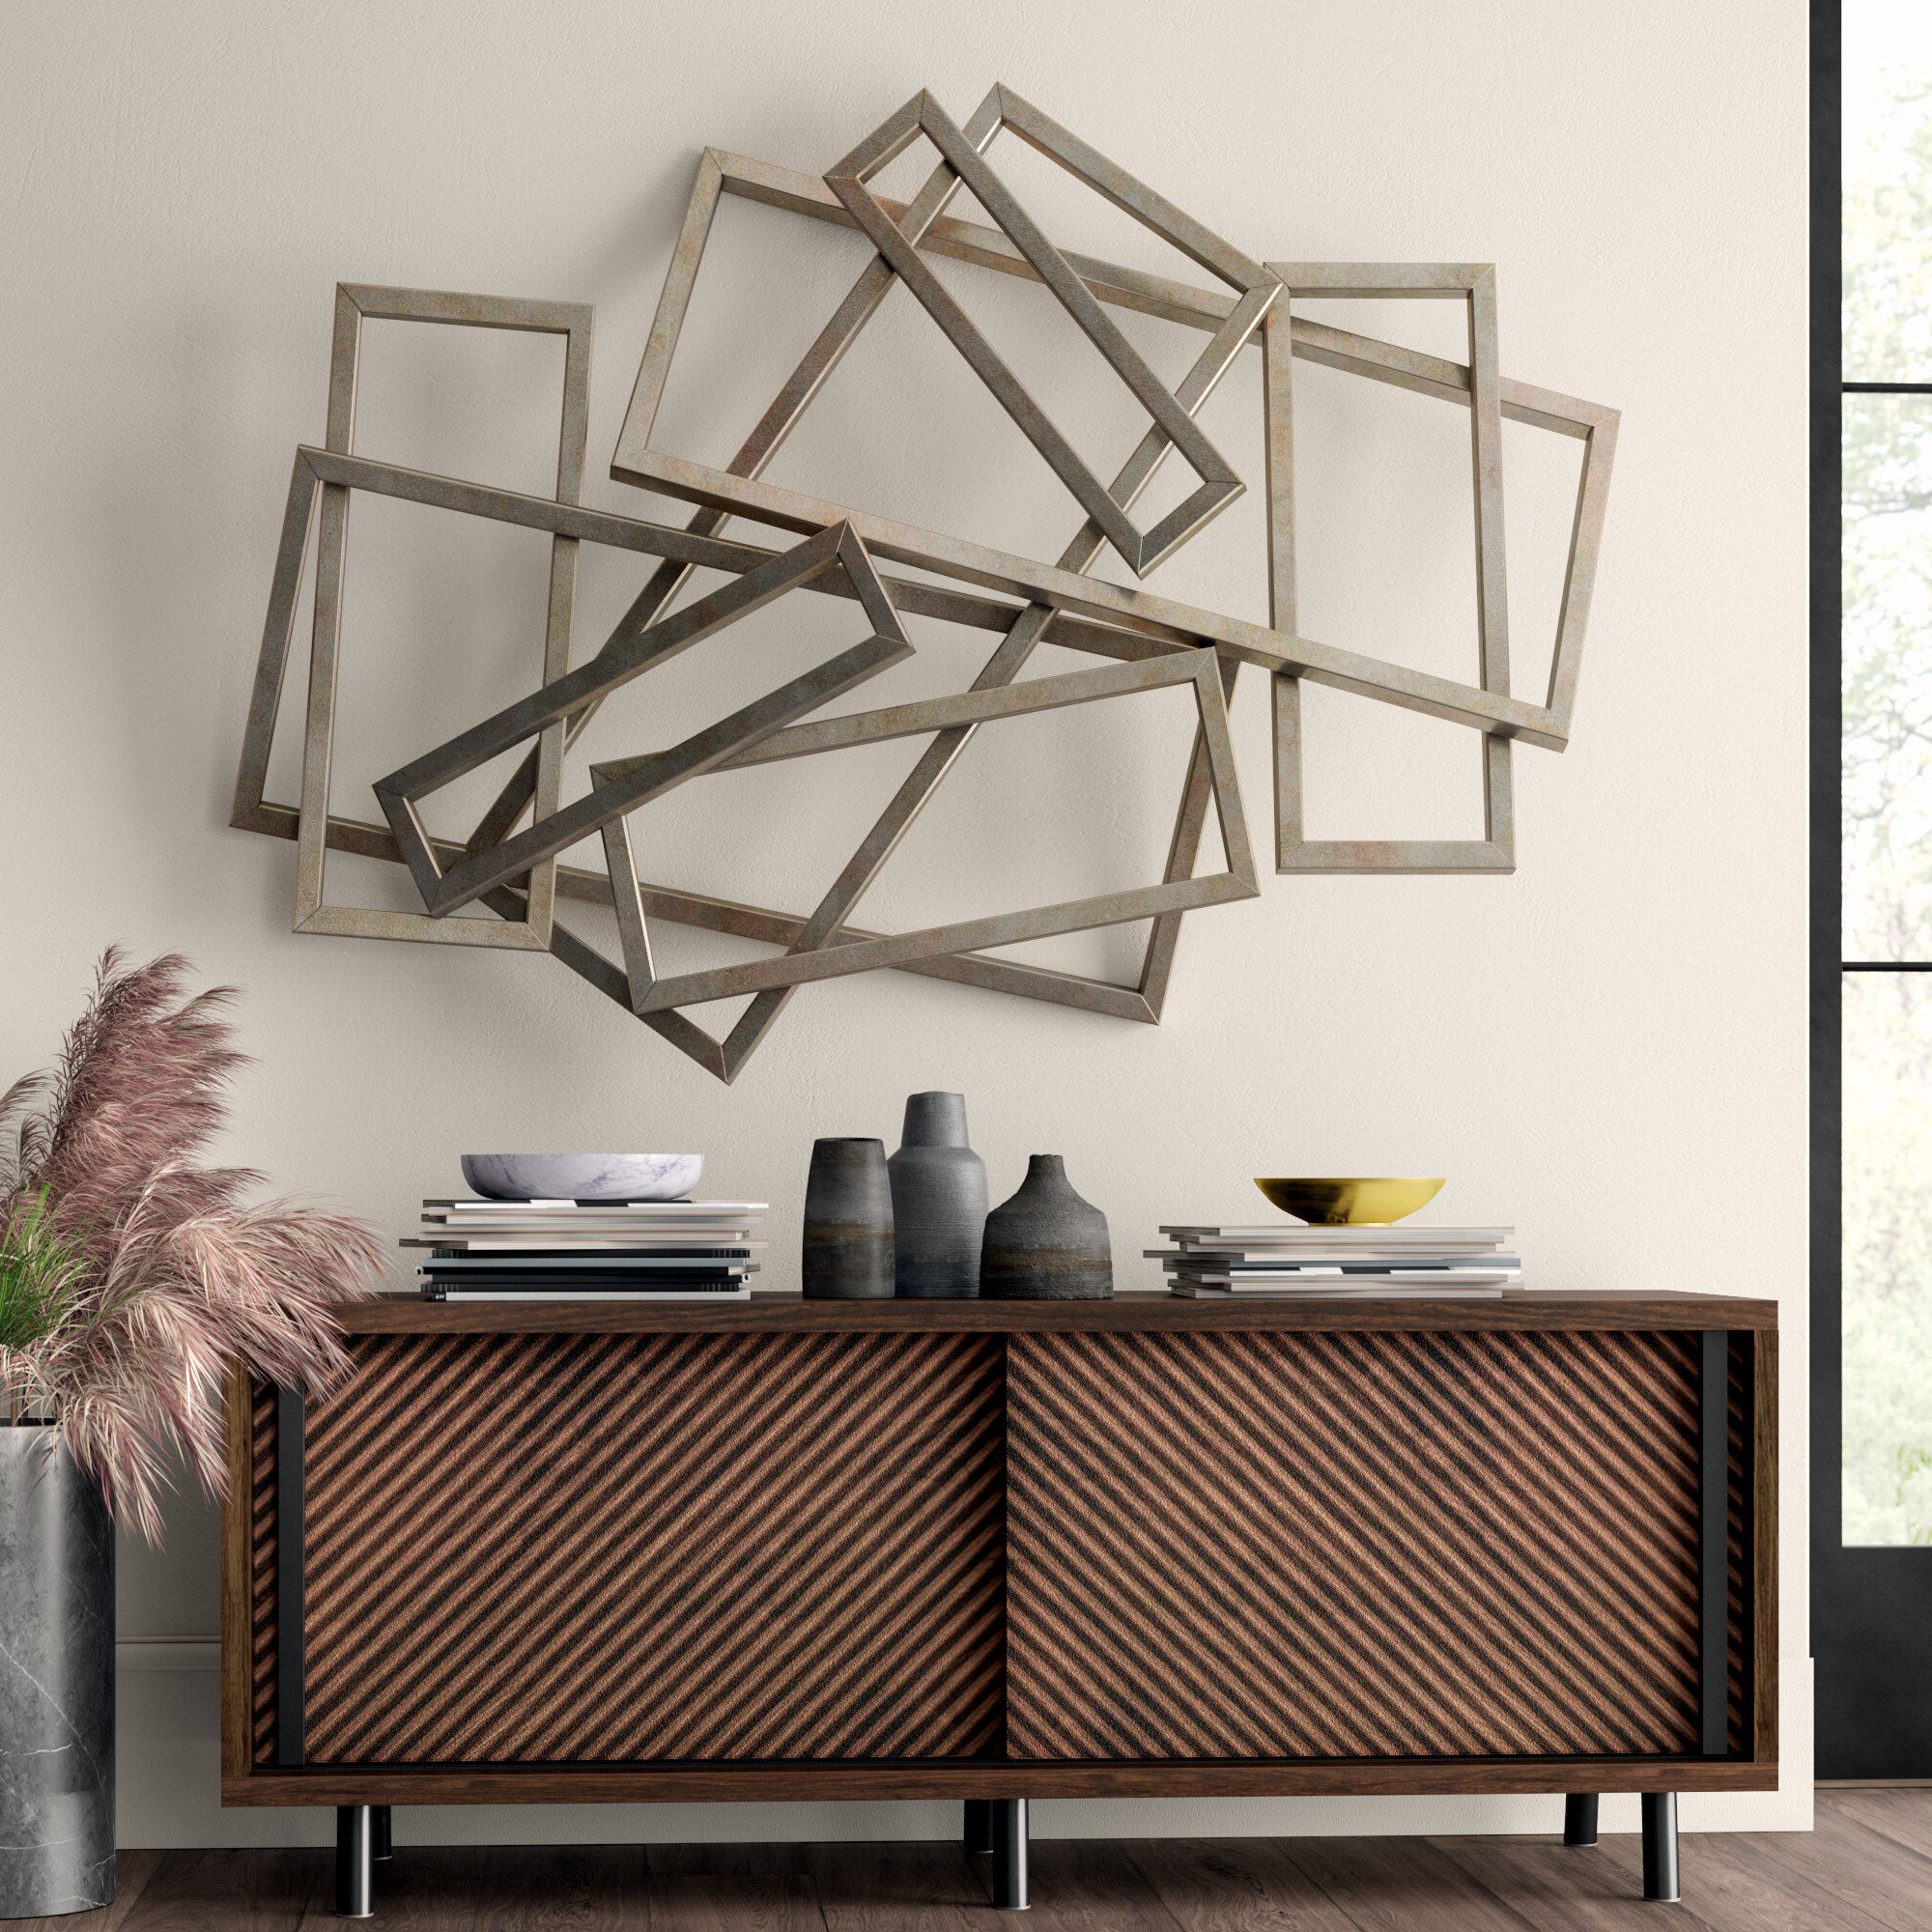 Newest Rectangular Metal Wall Décor Throughout Rectangles Iron Wall Décor (View 9 of 20)